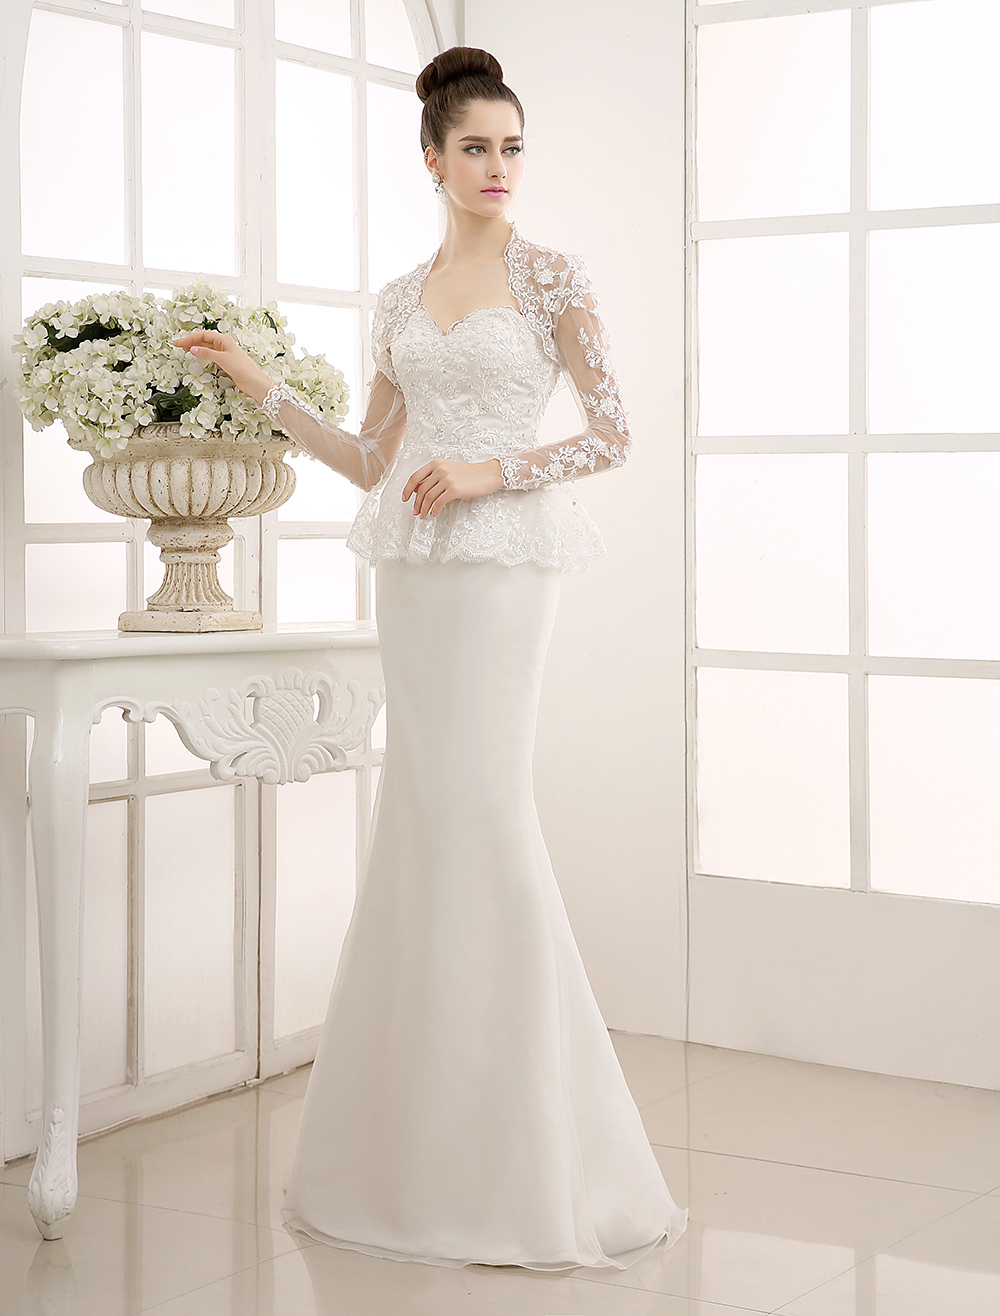 Ivory Bolero Mermaid Wedding Gown with Sweetheart Neck Lace Milanoo